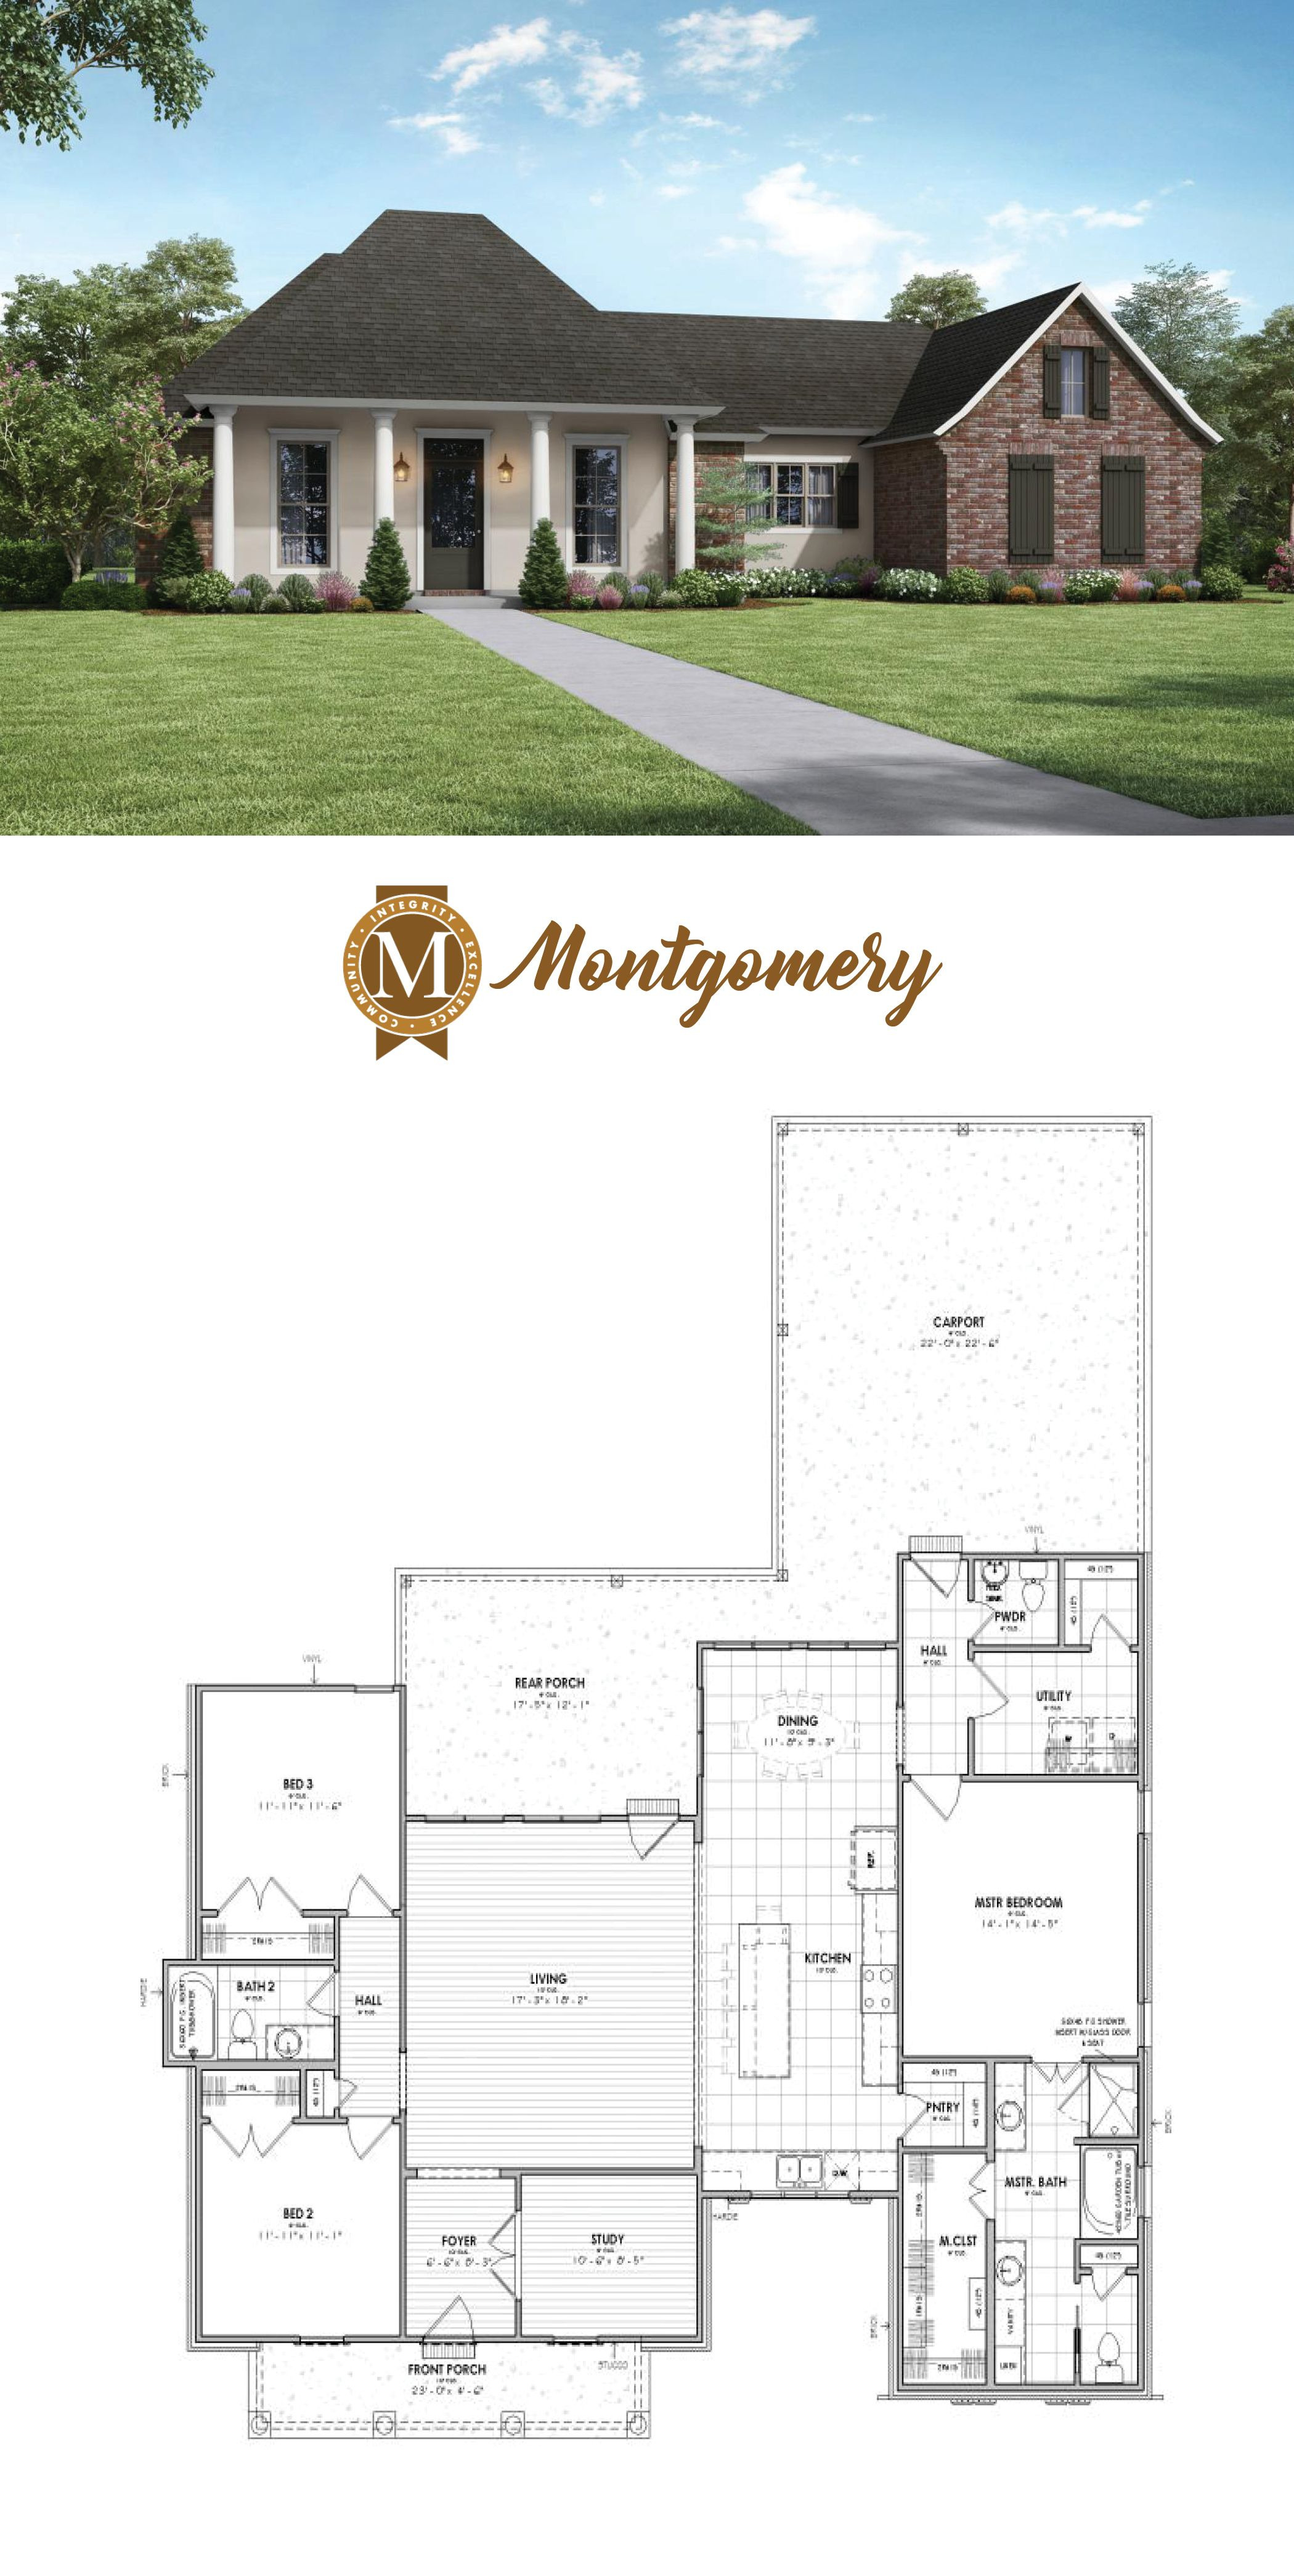 House Plans In Baton Rouge New Living Sq Ft 1988 Bedrooms 3 Baths 2 5 Lafayette Lake